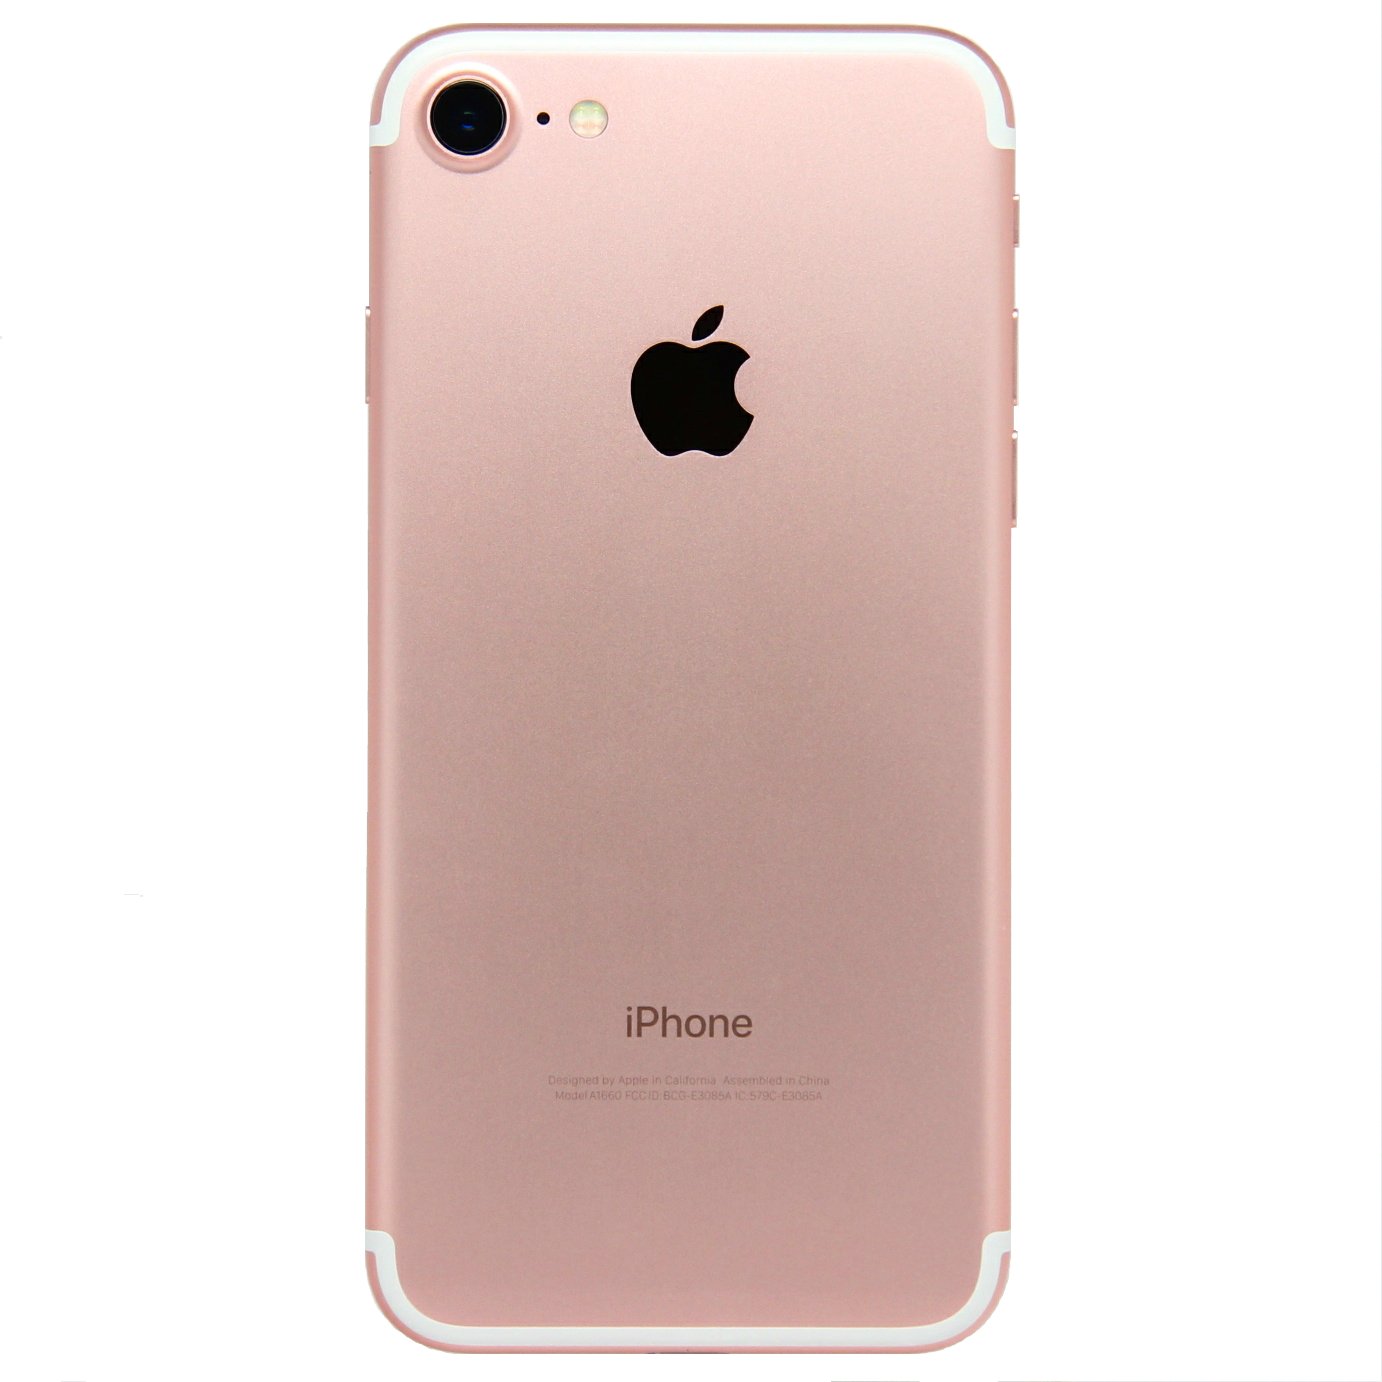 apple iphone 7 a1660 256gb smartphone lte cdma gsm unlocked ebay. Black Bedroom Furniture Sets. Home Design Ideas